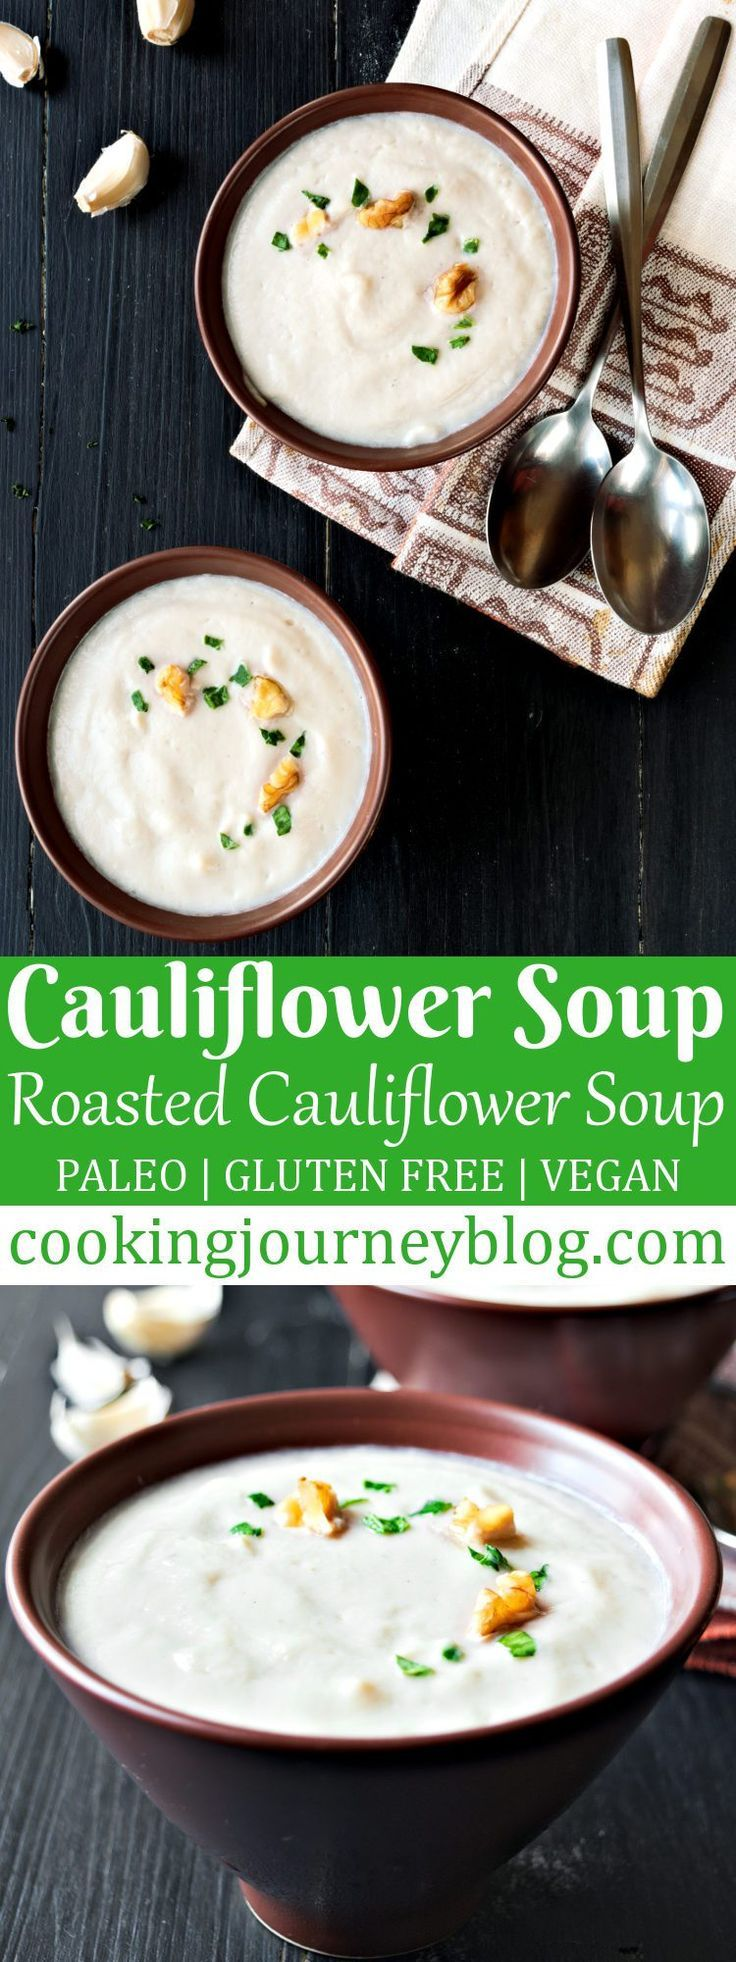 Cauliflower soup is smooth, silky, and absolutely tasty! This cauliflower soup recipe is healthy, gluten-free and vegan-friendly. So if you are looking into healthy cauliflower soup or mushroom soup combined together, they will deliver flavorful, creamy dish to serve for your family.